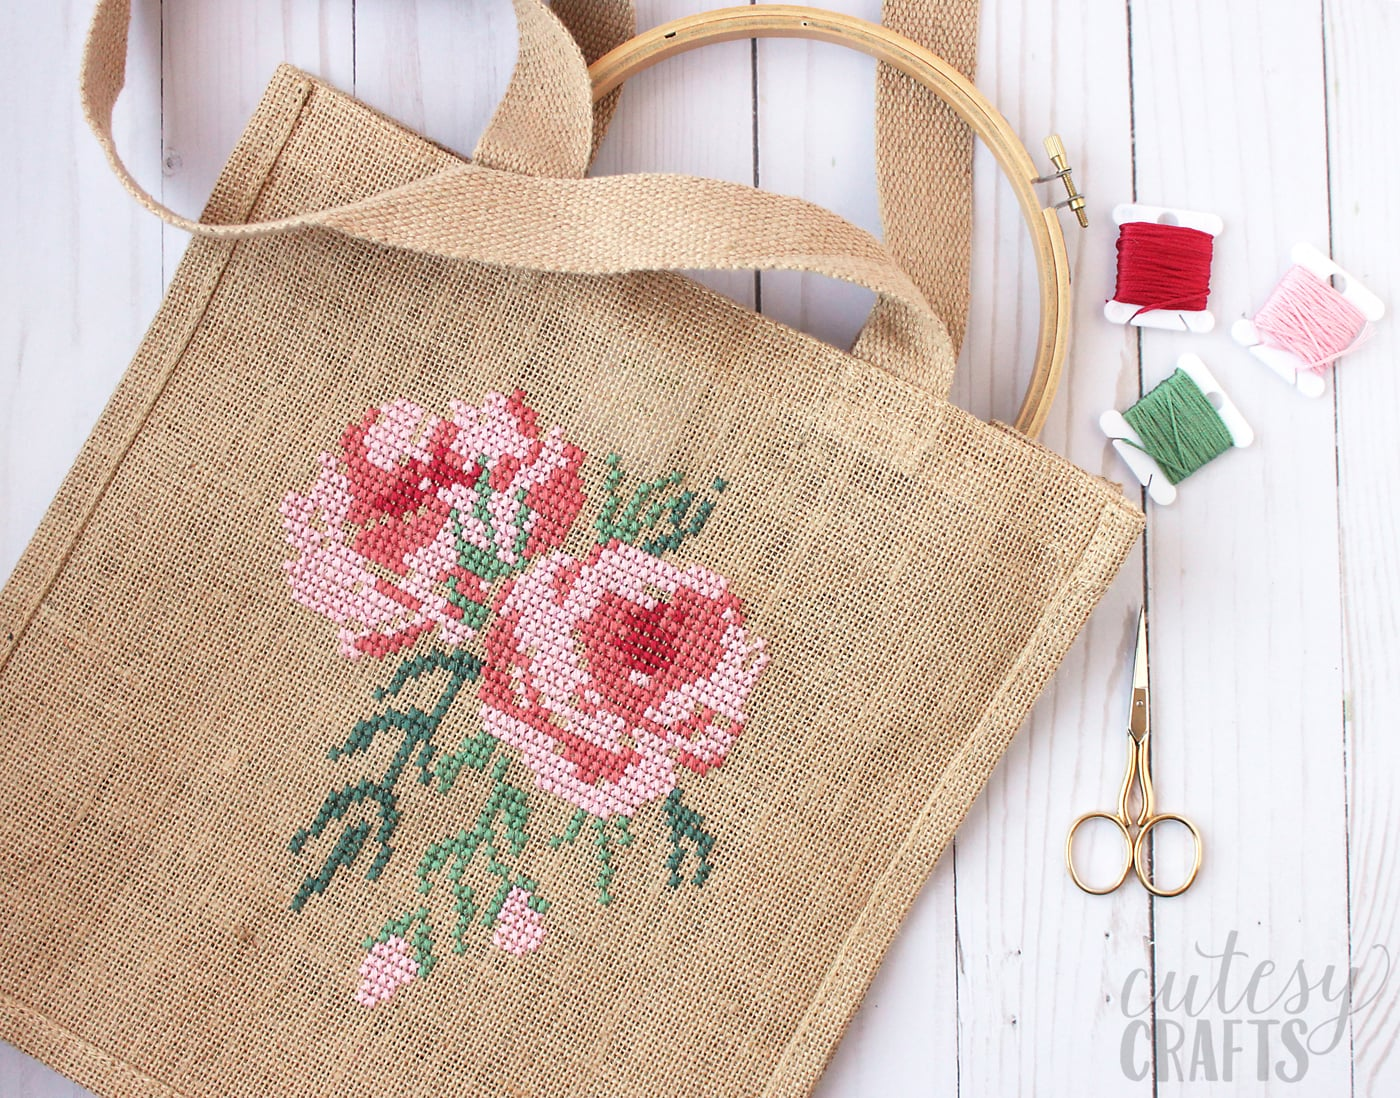 Free pattern for a Cross Stitch Burlap Bag - learn how to cross stitch a rose on a burlap bag #crossstitch #crossstitchrose #crossstitchpattern